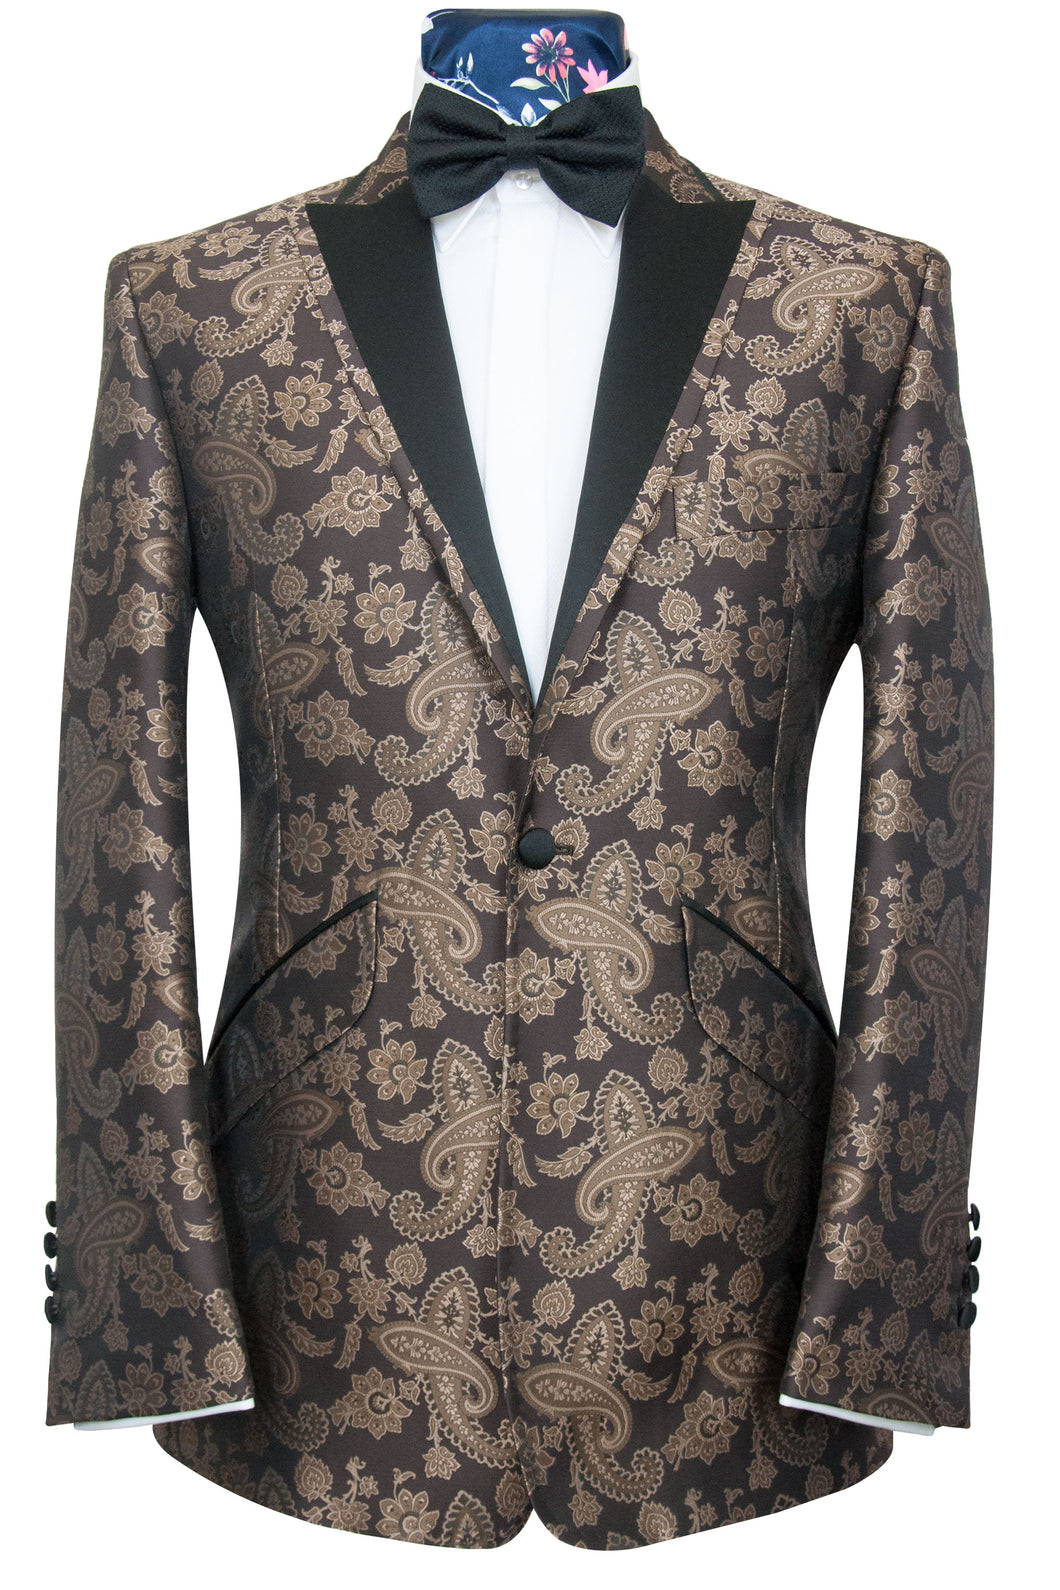 The Ackerman Classic Dinner Jacket in Chocolate with Muted Bronze Paisley Pattern